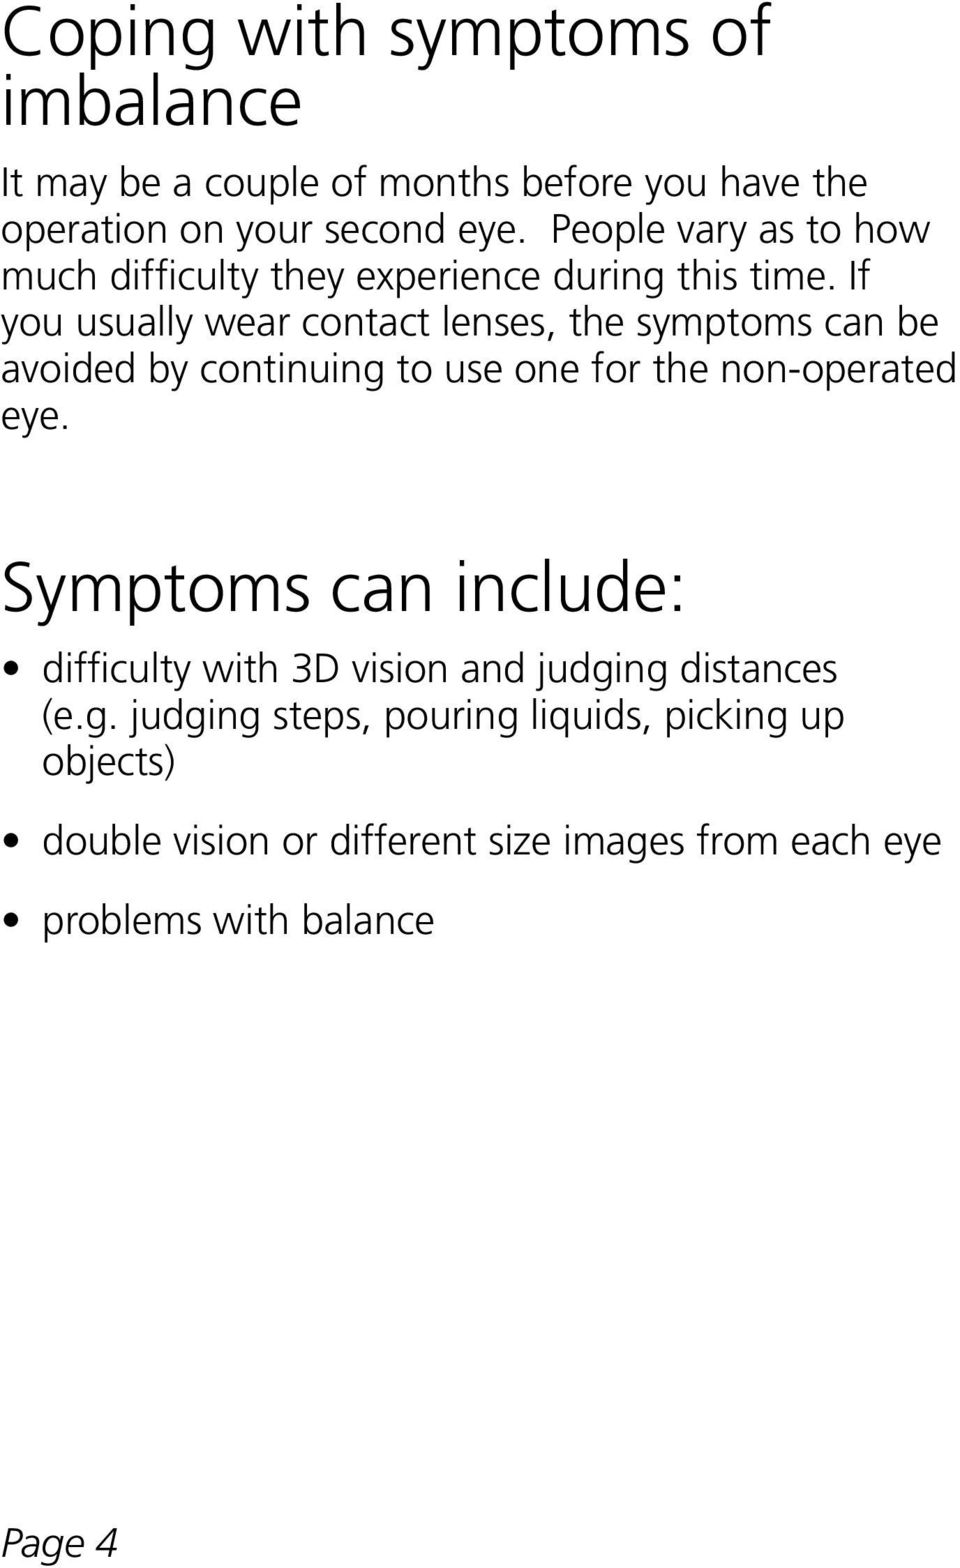 If you usually wear contact lenses, the symptoms can be avoided by continuing to use one for the non-operated eye.